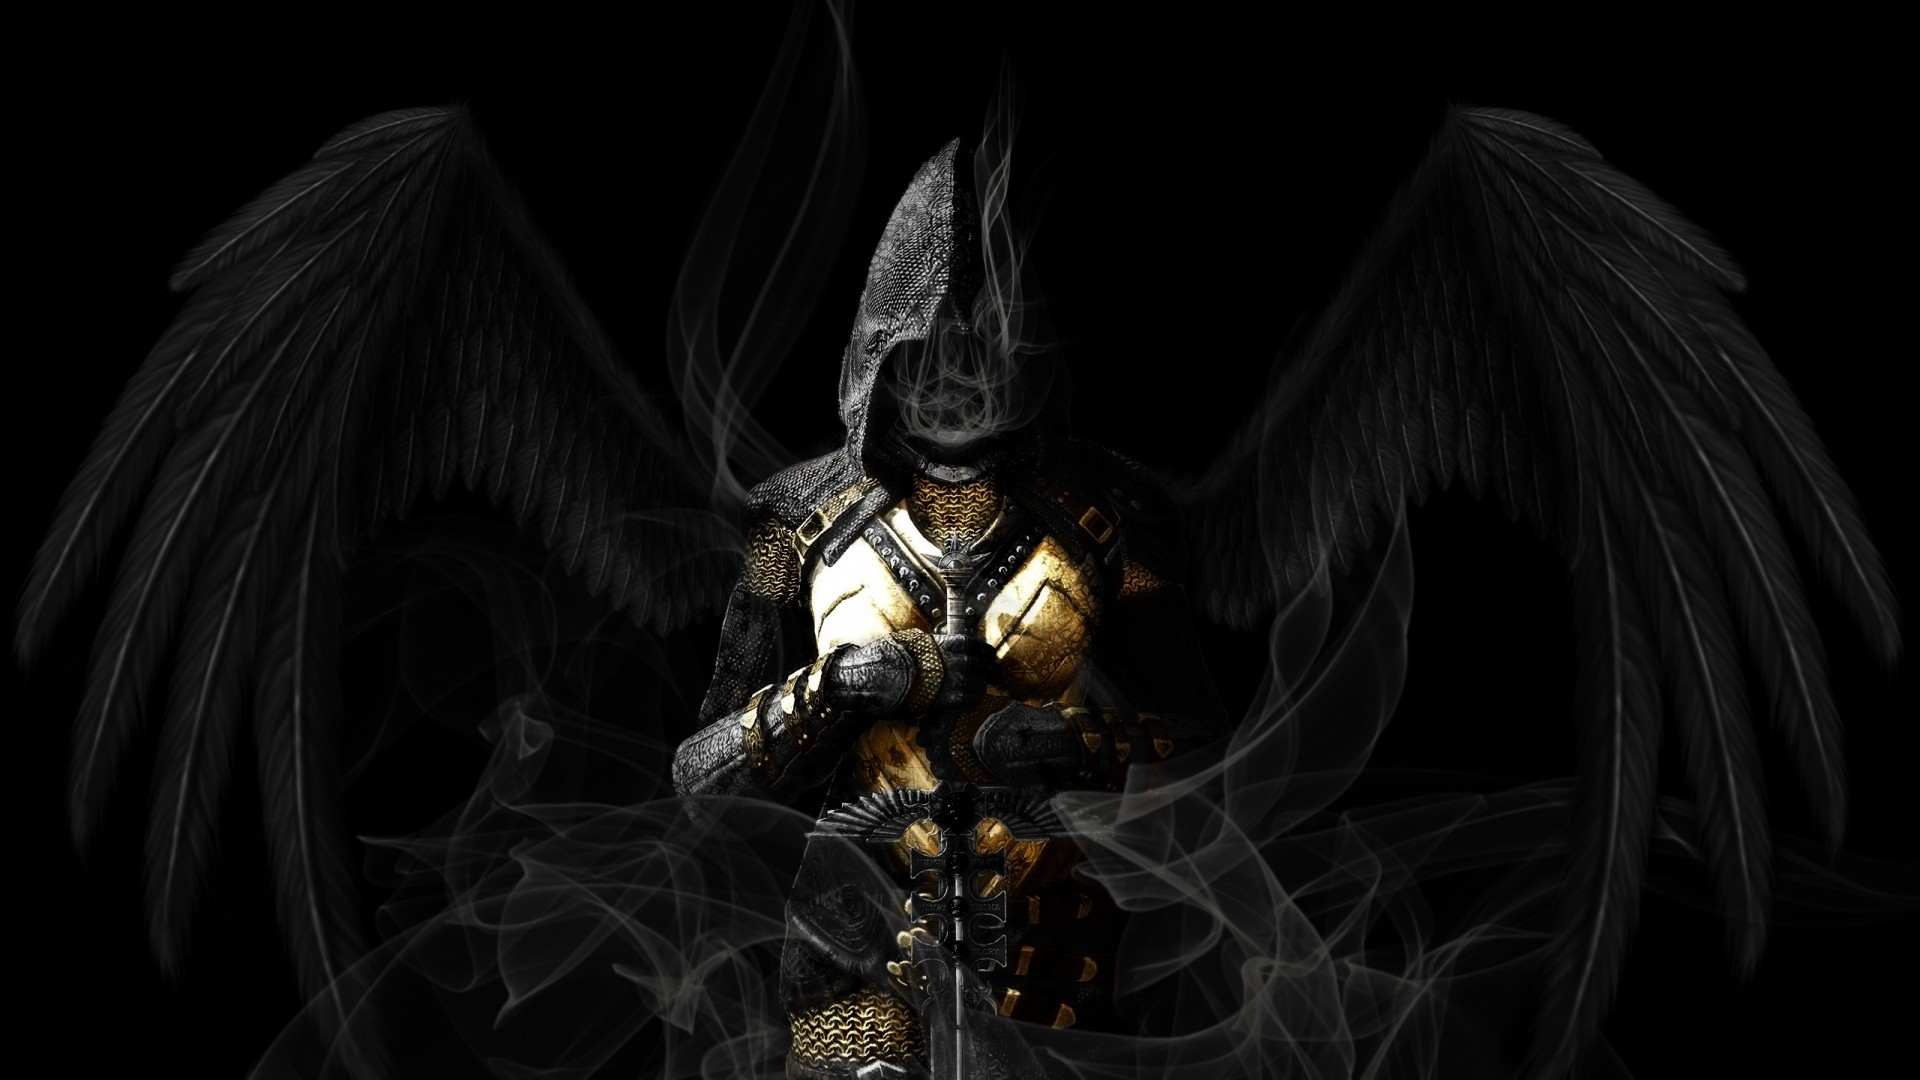 General 1920x1080 angel wings sword armor dark archangel